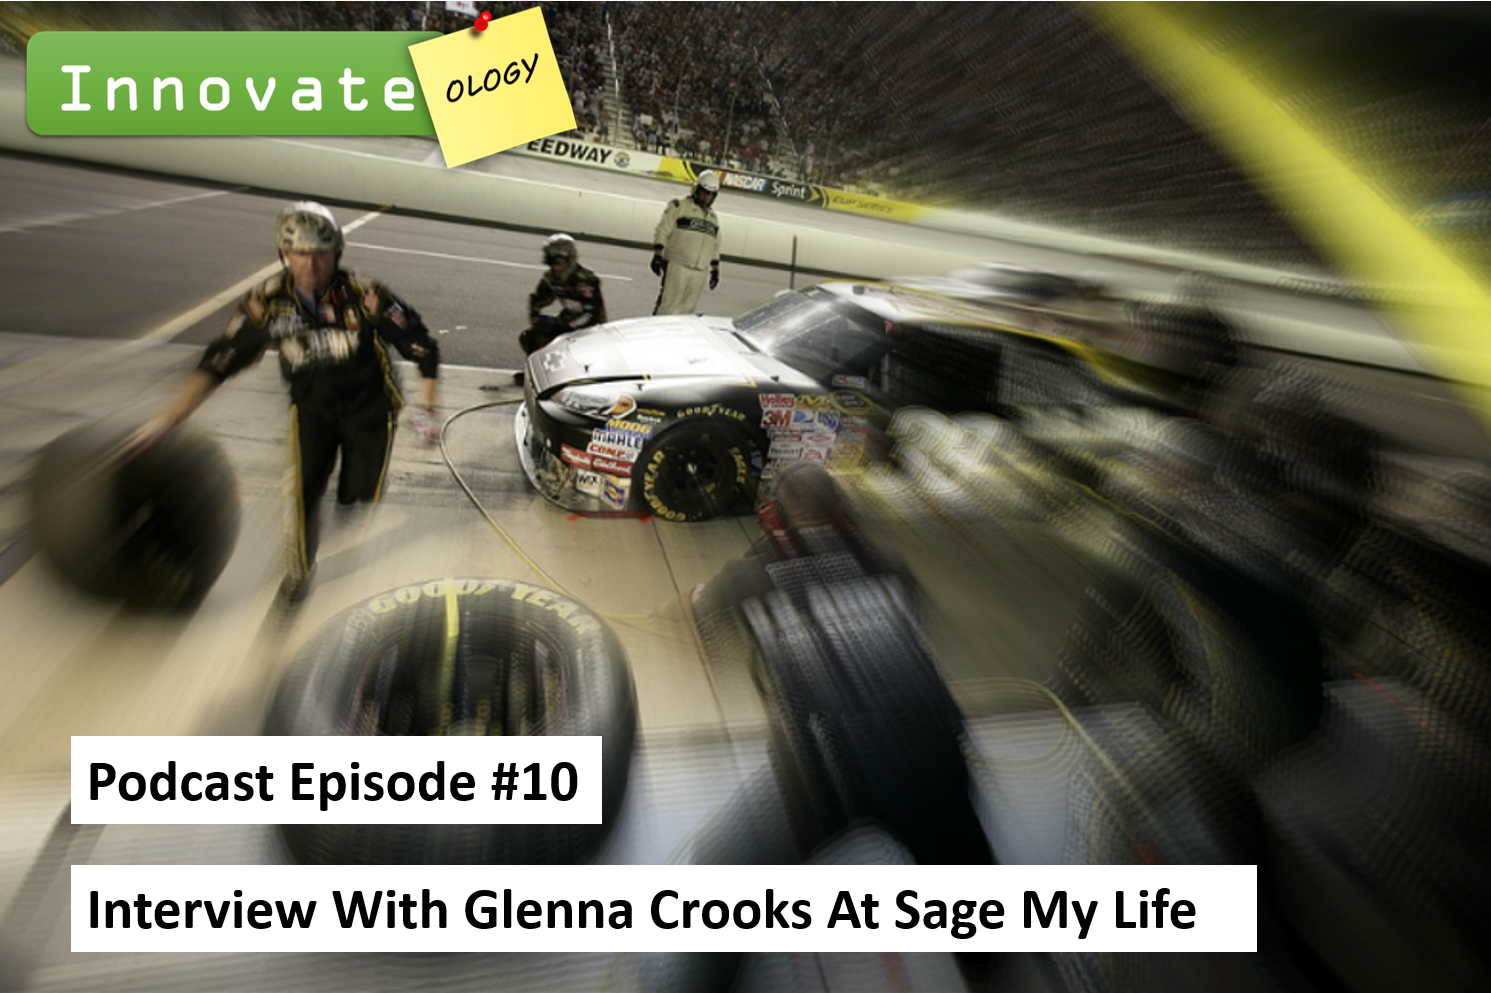 Episode 10 - Interview With Glenna Crooks At Sage My Life | Innovate